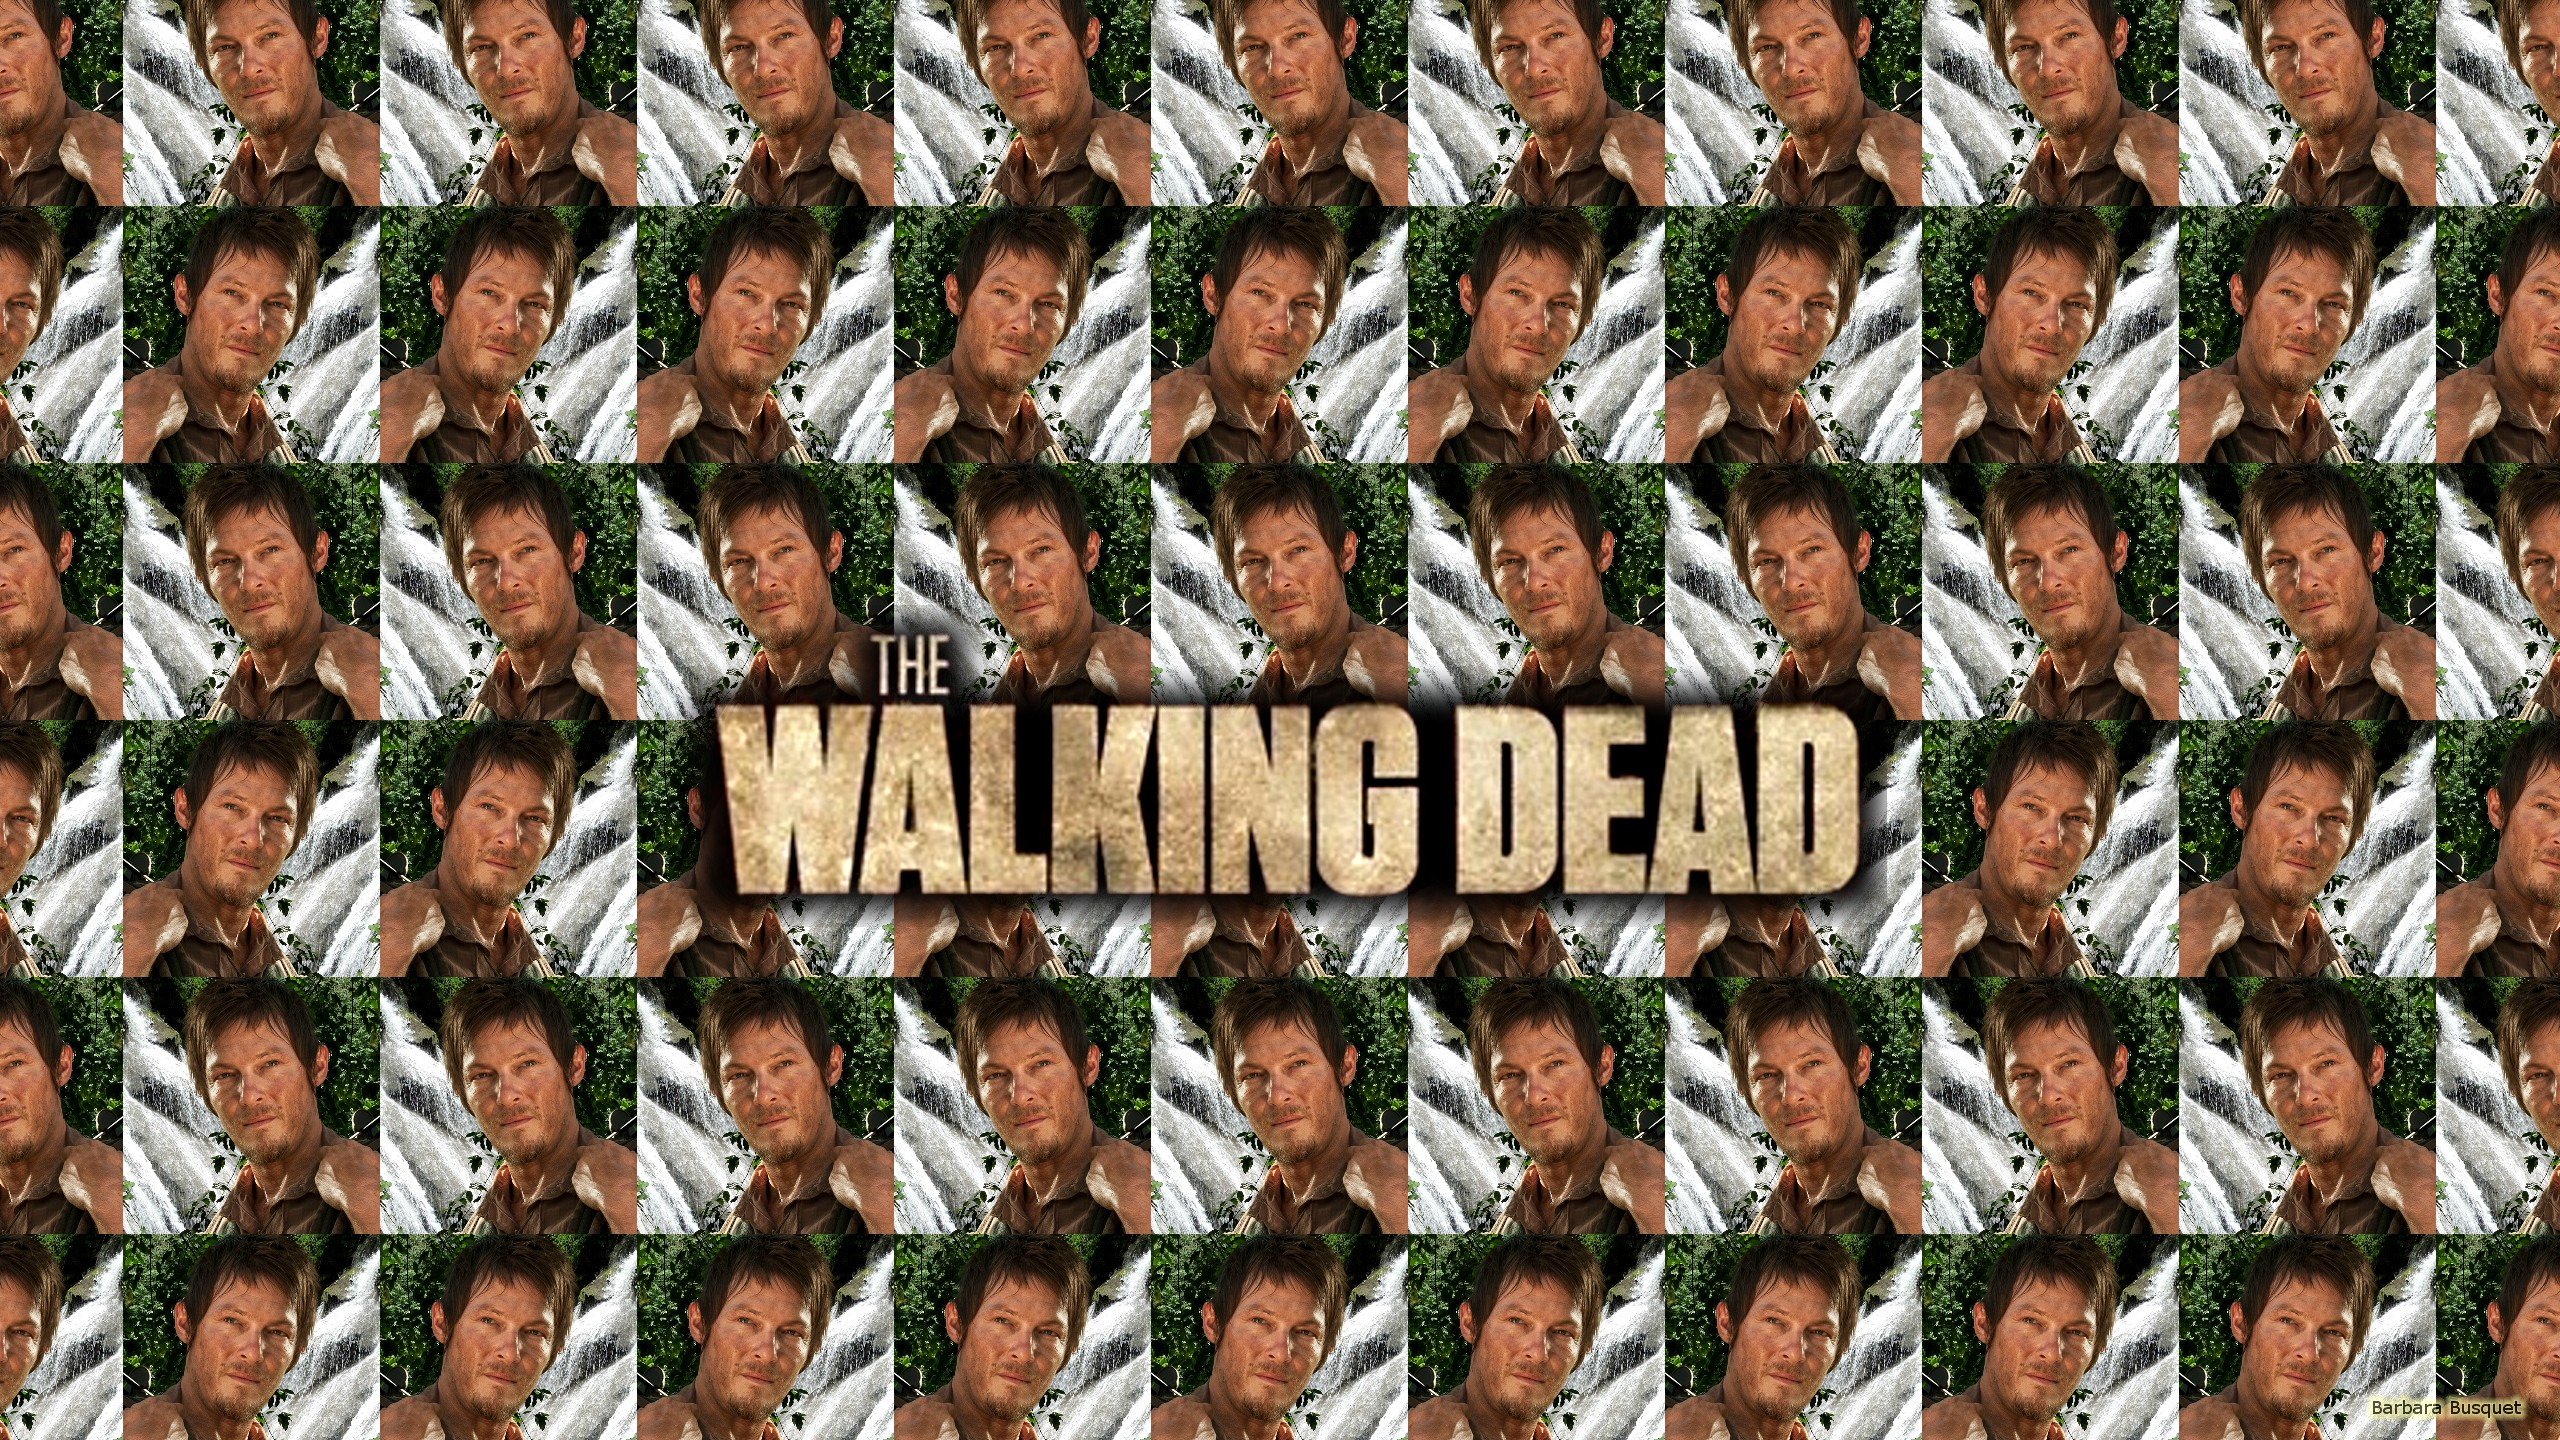 Daryl Dixon Wallpaper ·① Download Free Awesome HD